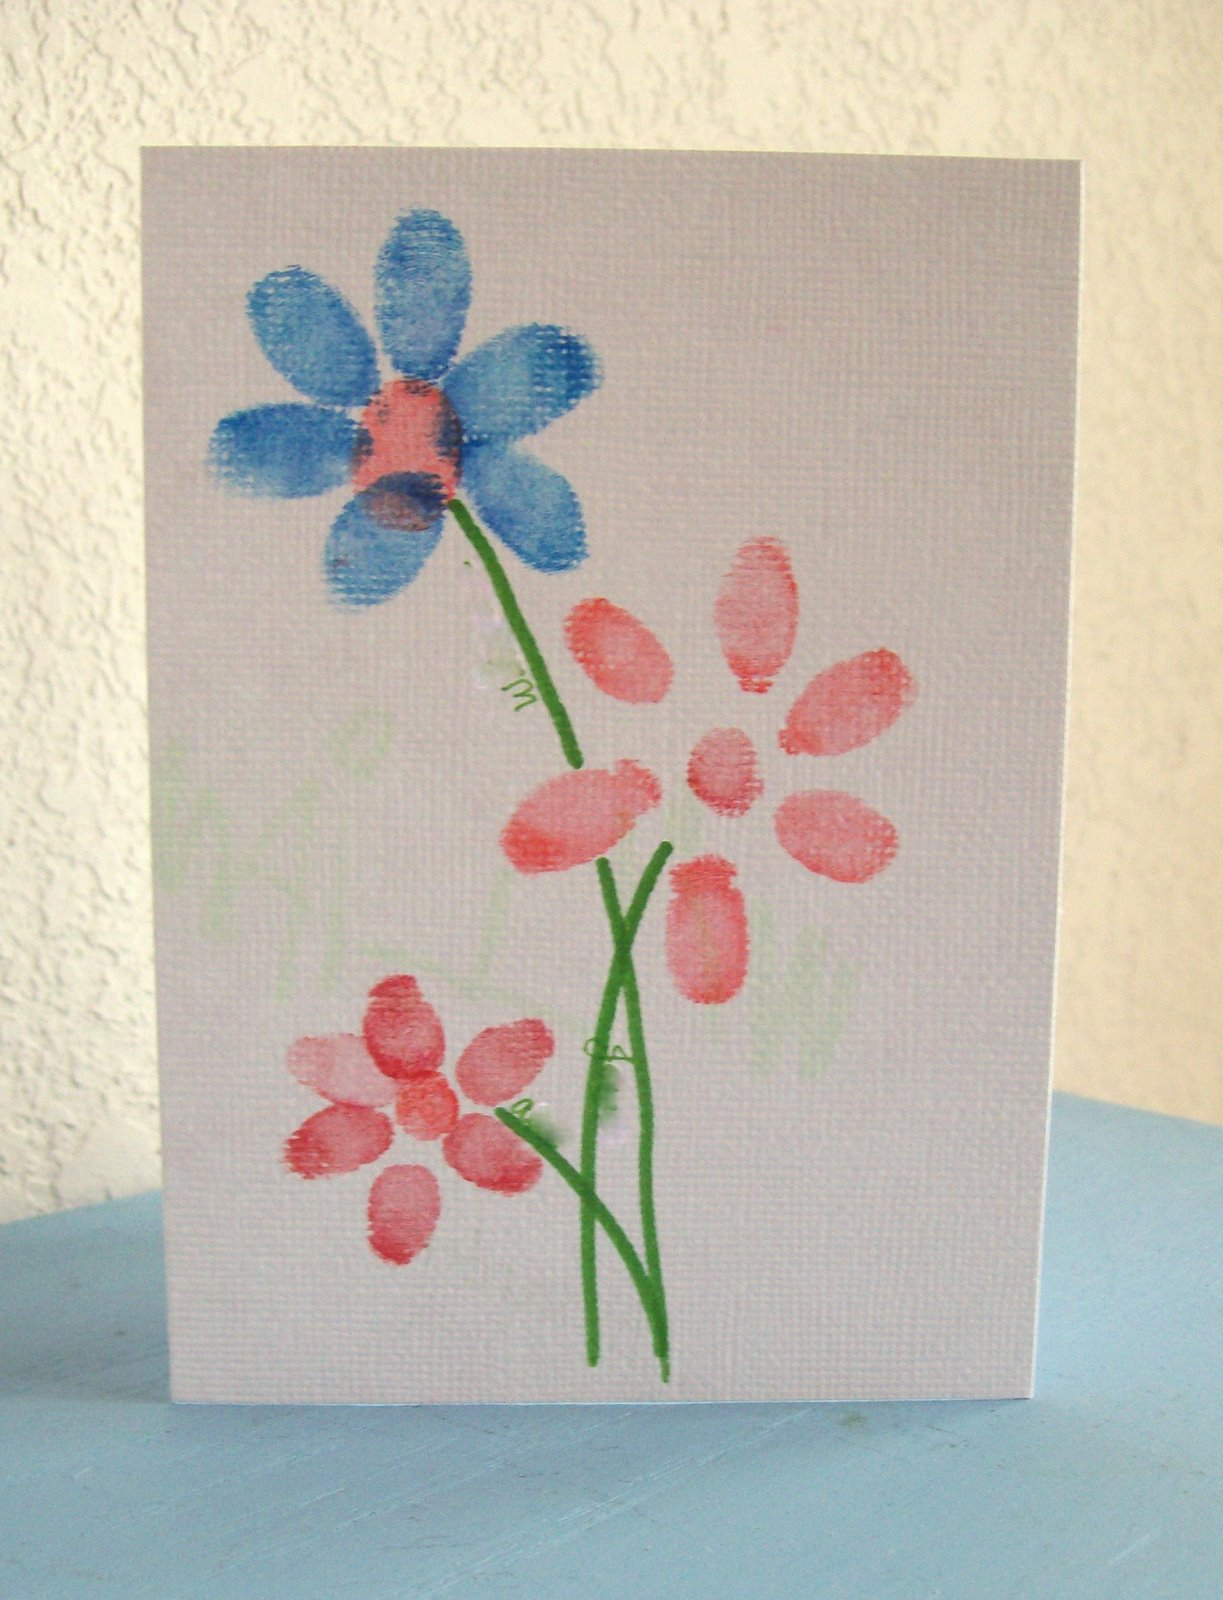 Mothers Day Crafts With Popscicle Sticks Site Pinterest Com